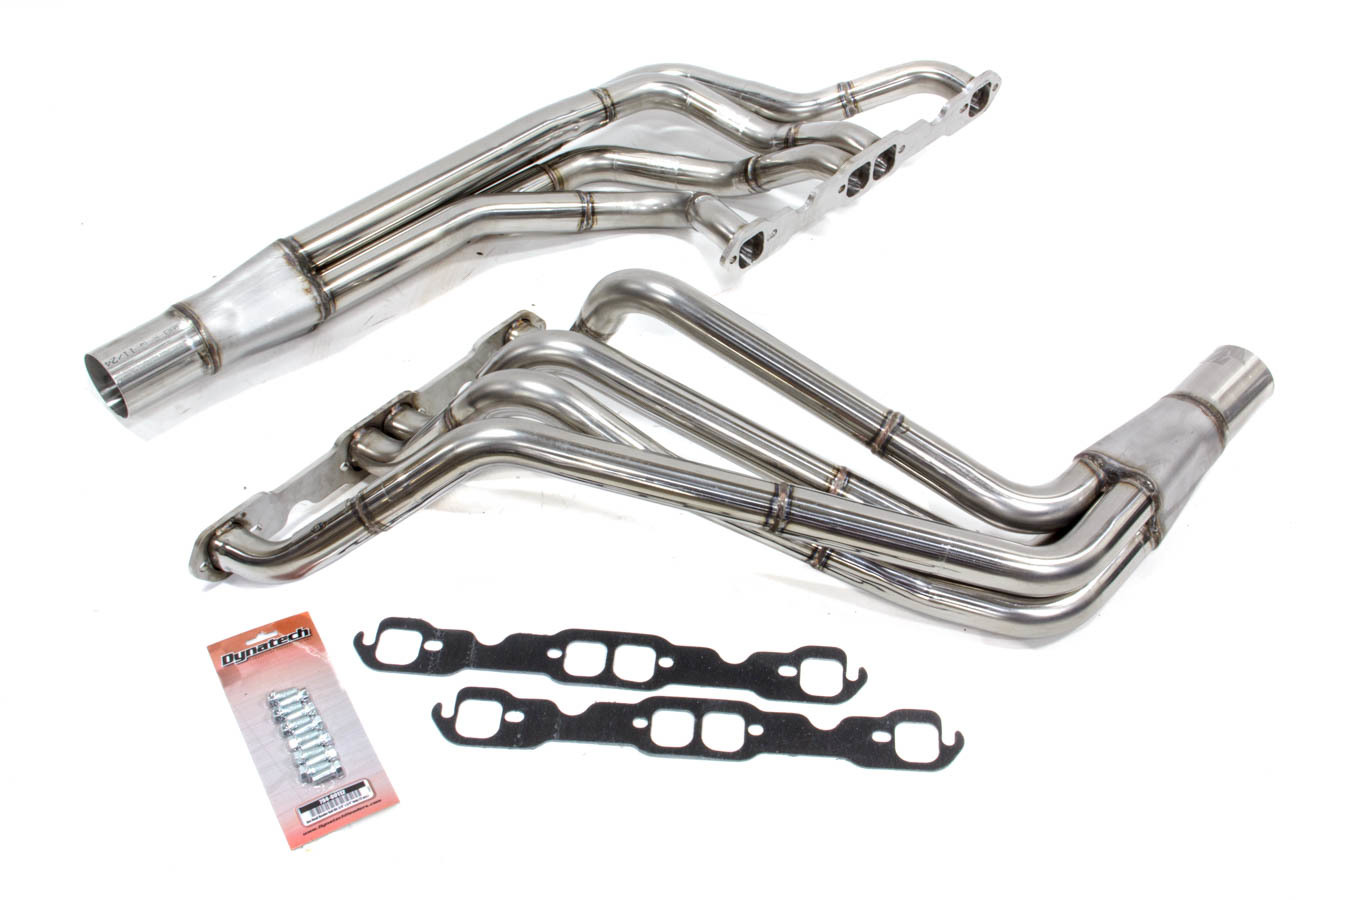 Dynatech 701-27410 Headers, Oval Track, 1-5/8 to 1-7/8 in Primary, 3 in Collector, Stainless, Natural, Small Block Chevy, Kit